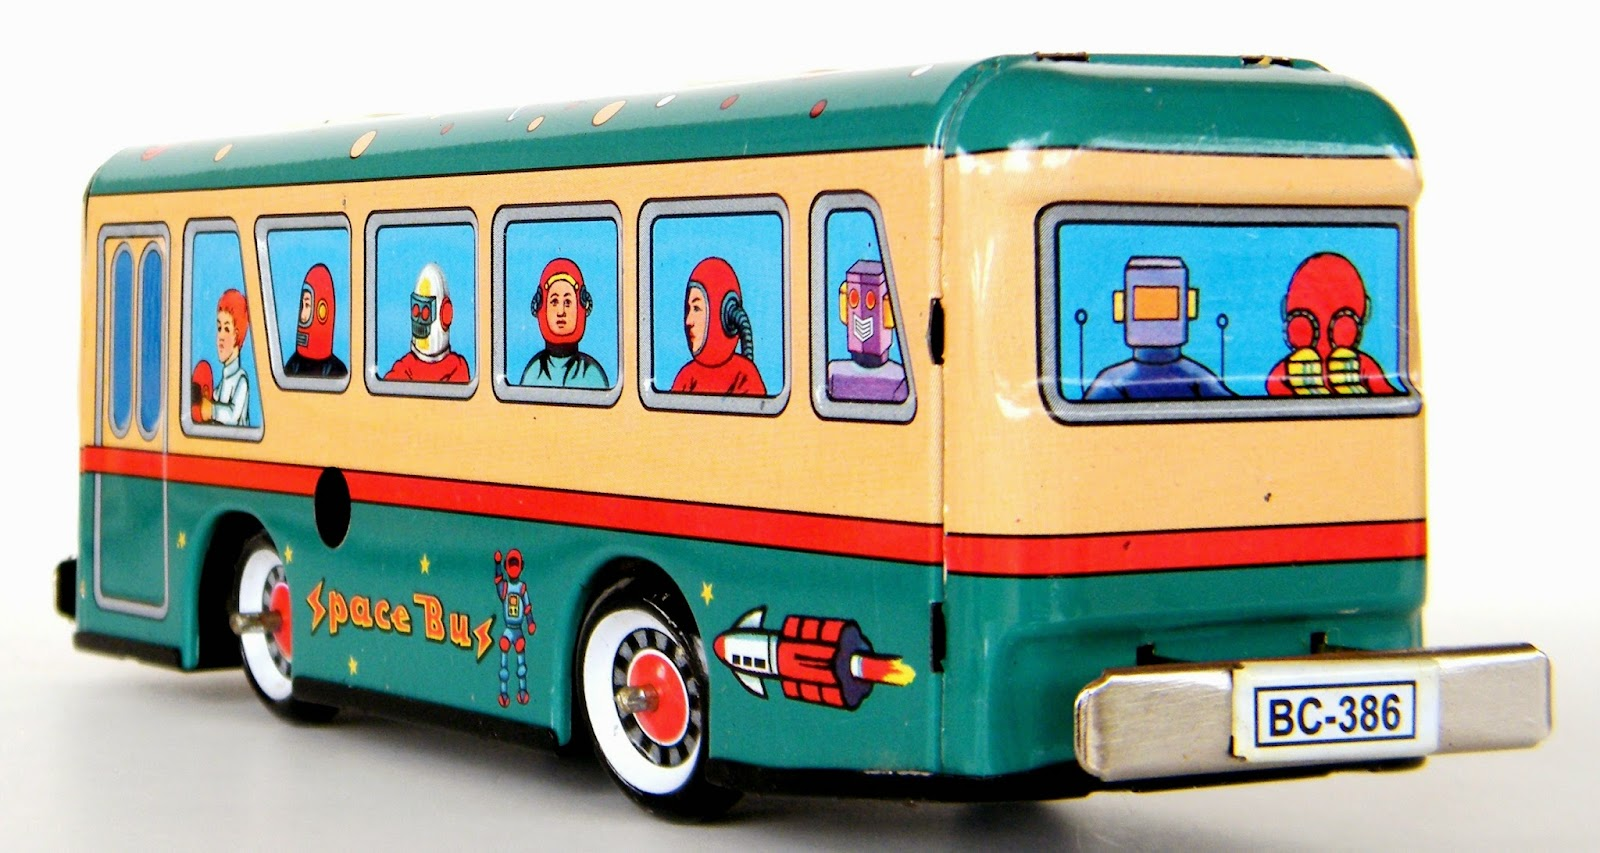 Toys and Stuff: Chinese Space Bus #MS-457